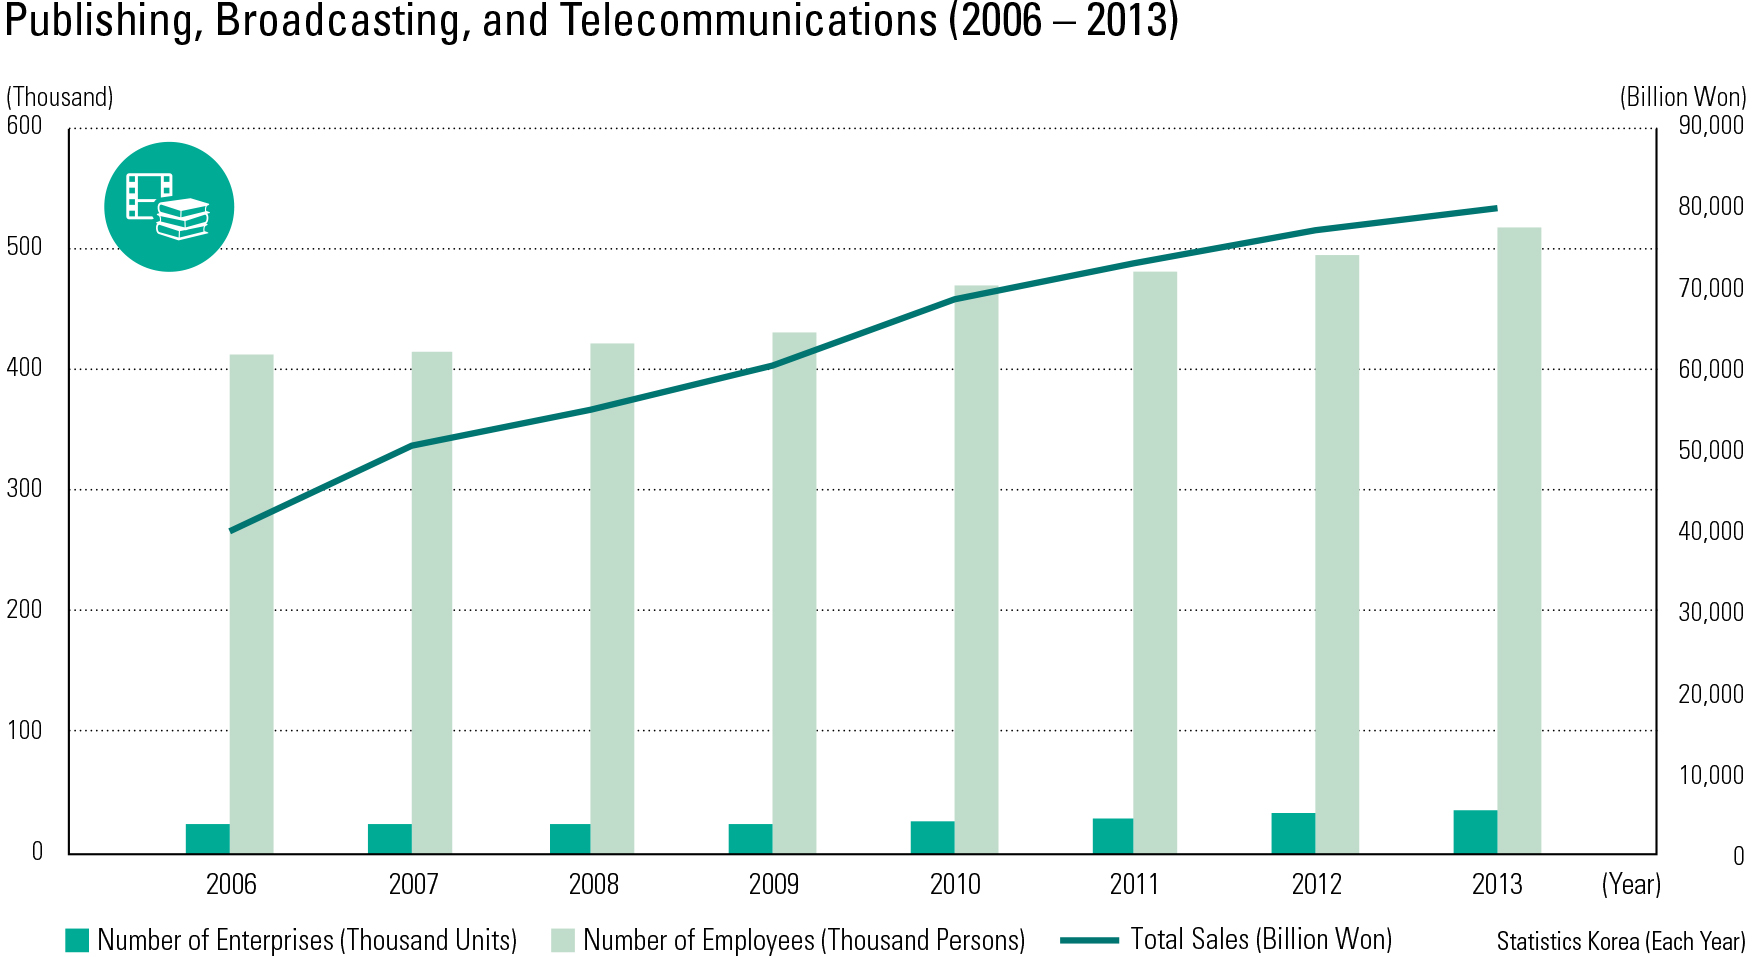 "Publishing, Broadcasting, and Telecommunications (2006 – 2013)<p class=""oz_zoom"" zimg=""http://imagedata.cafe24.com/us_3/us3_187-4_2.jpg""><span style=""font-family:Nanum Myeongjo;""><span style=""font-size:18px;""><span class=""label label-danger"">UPDATE DATA</span></span></p>"